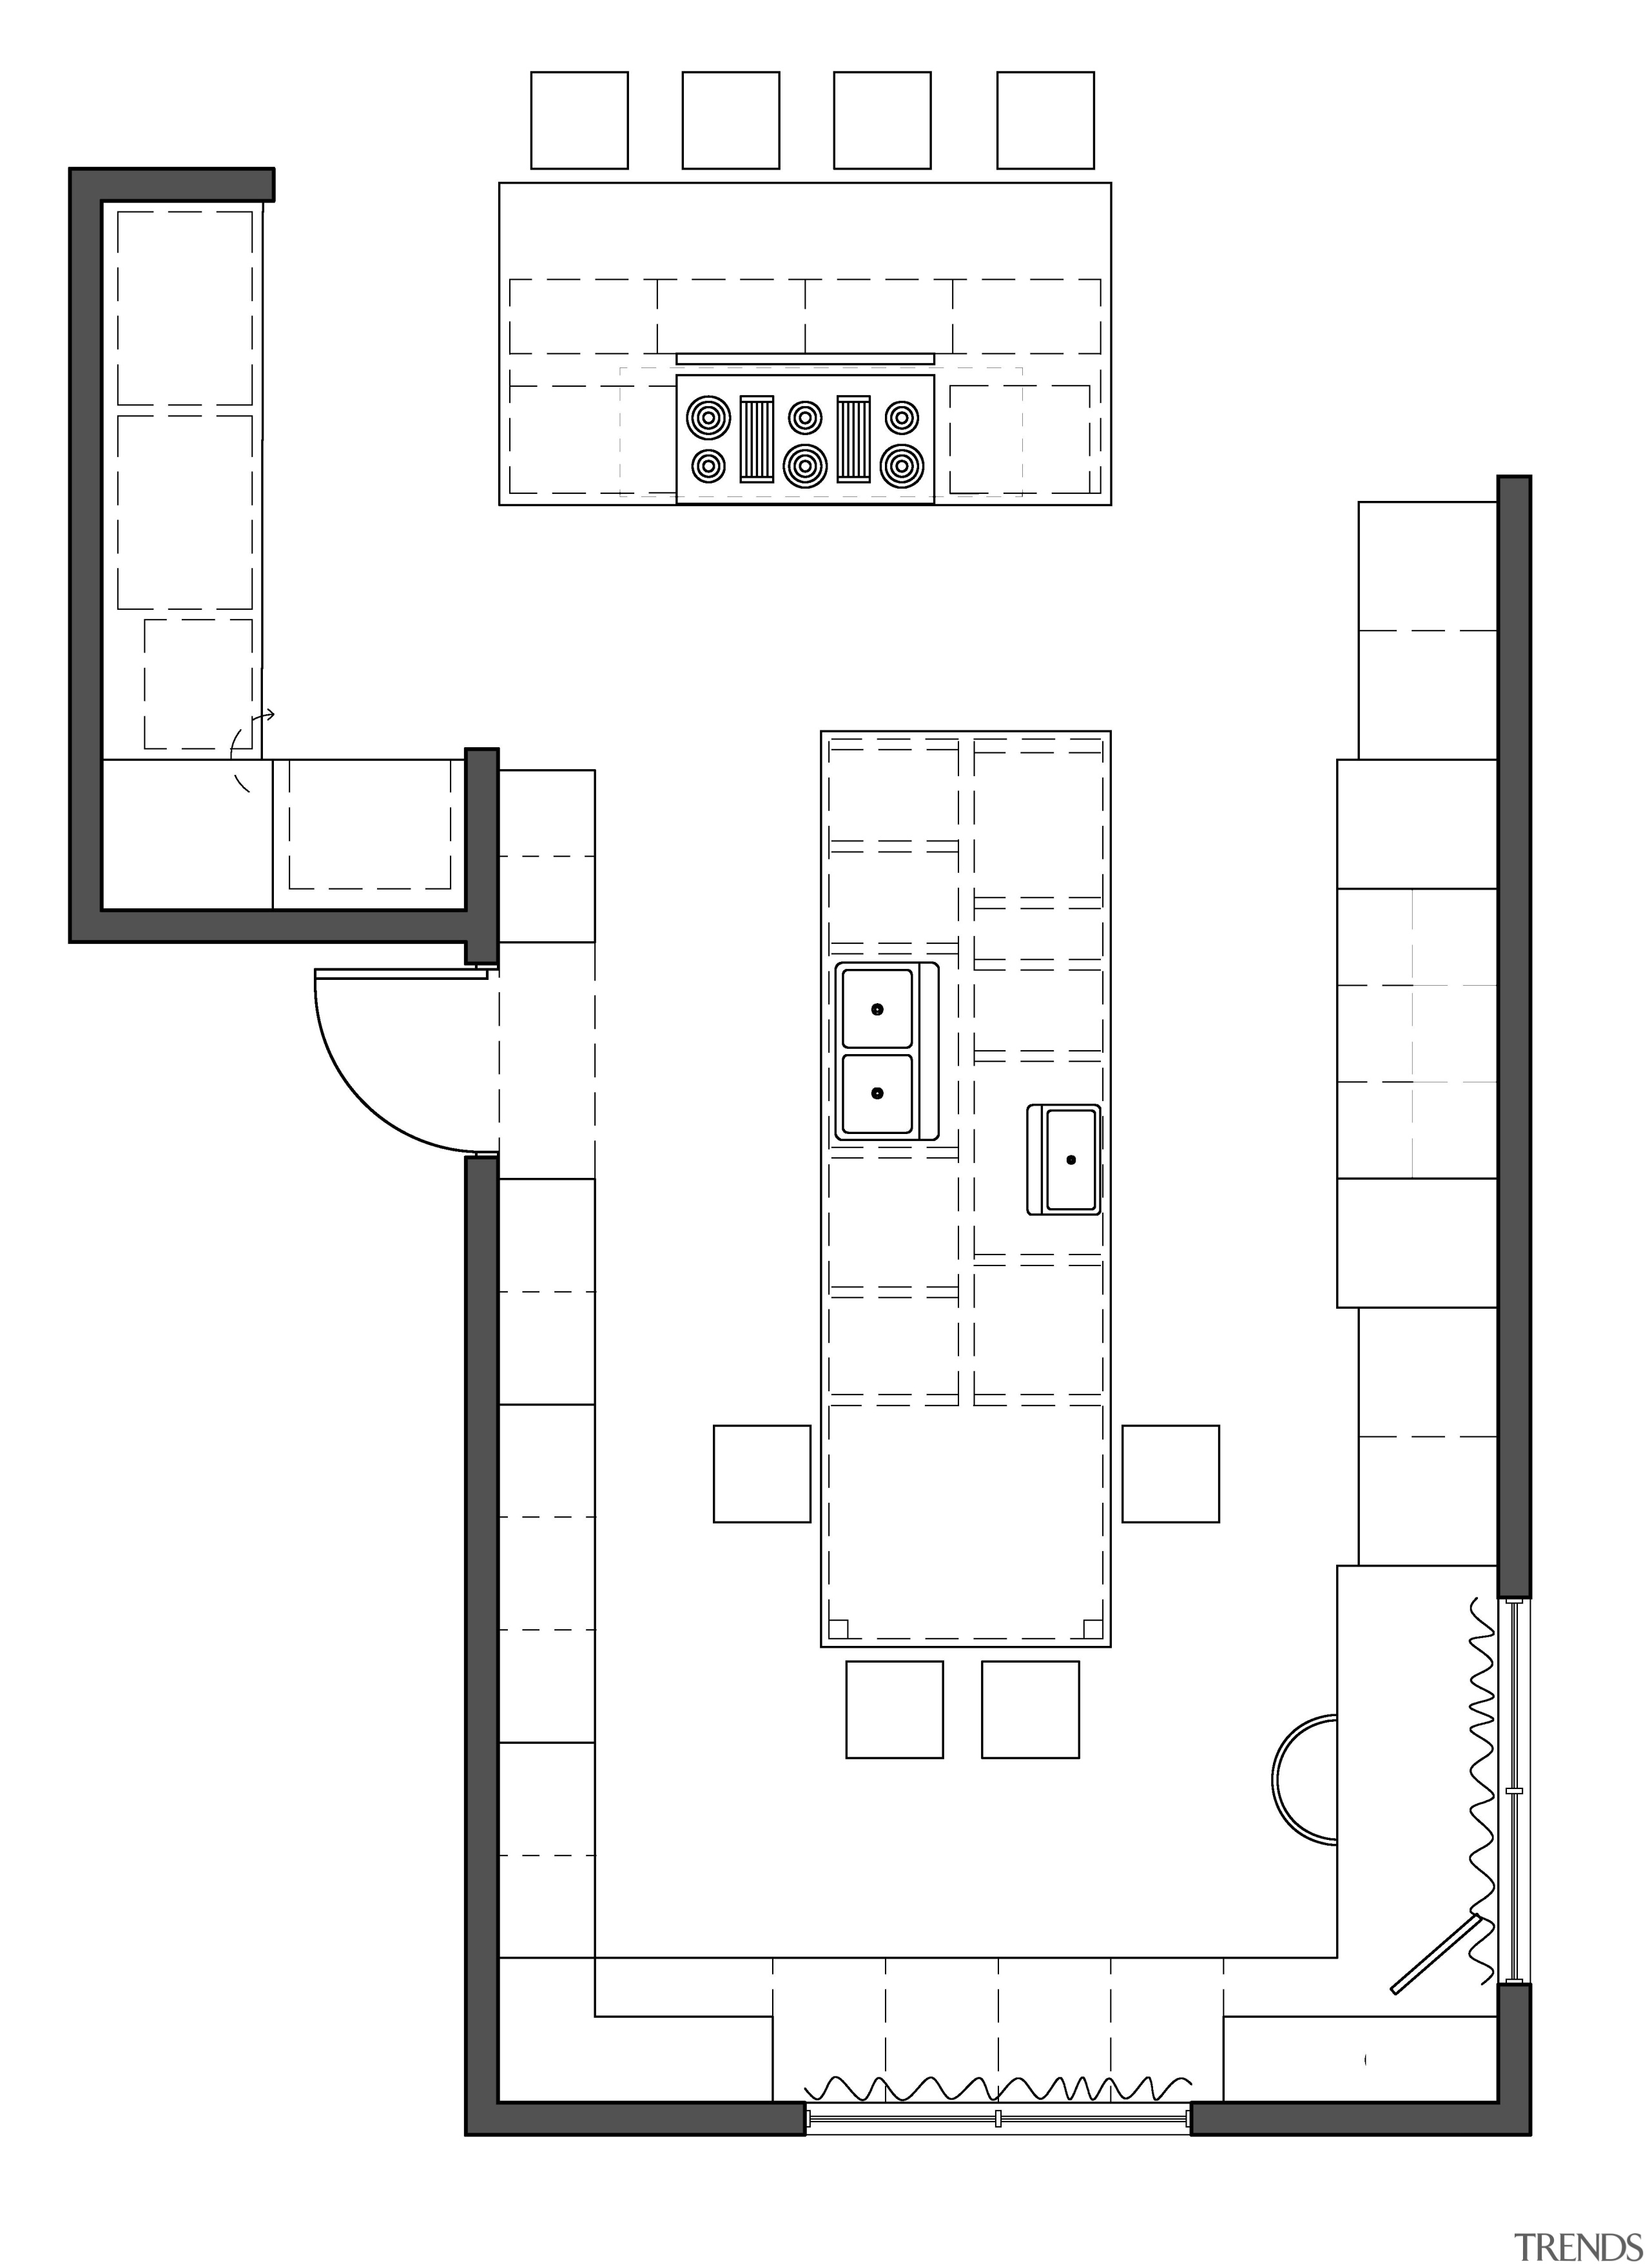 Plan of traditional white kitchen design by Jamie angle, architecture, area, black and white, design, diagram, drawing, floor plan, line, plan, product, product design, square, structure, white